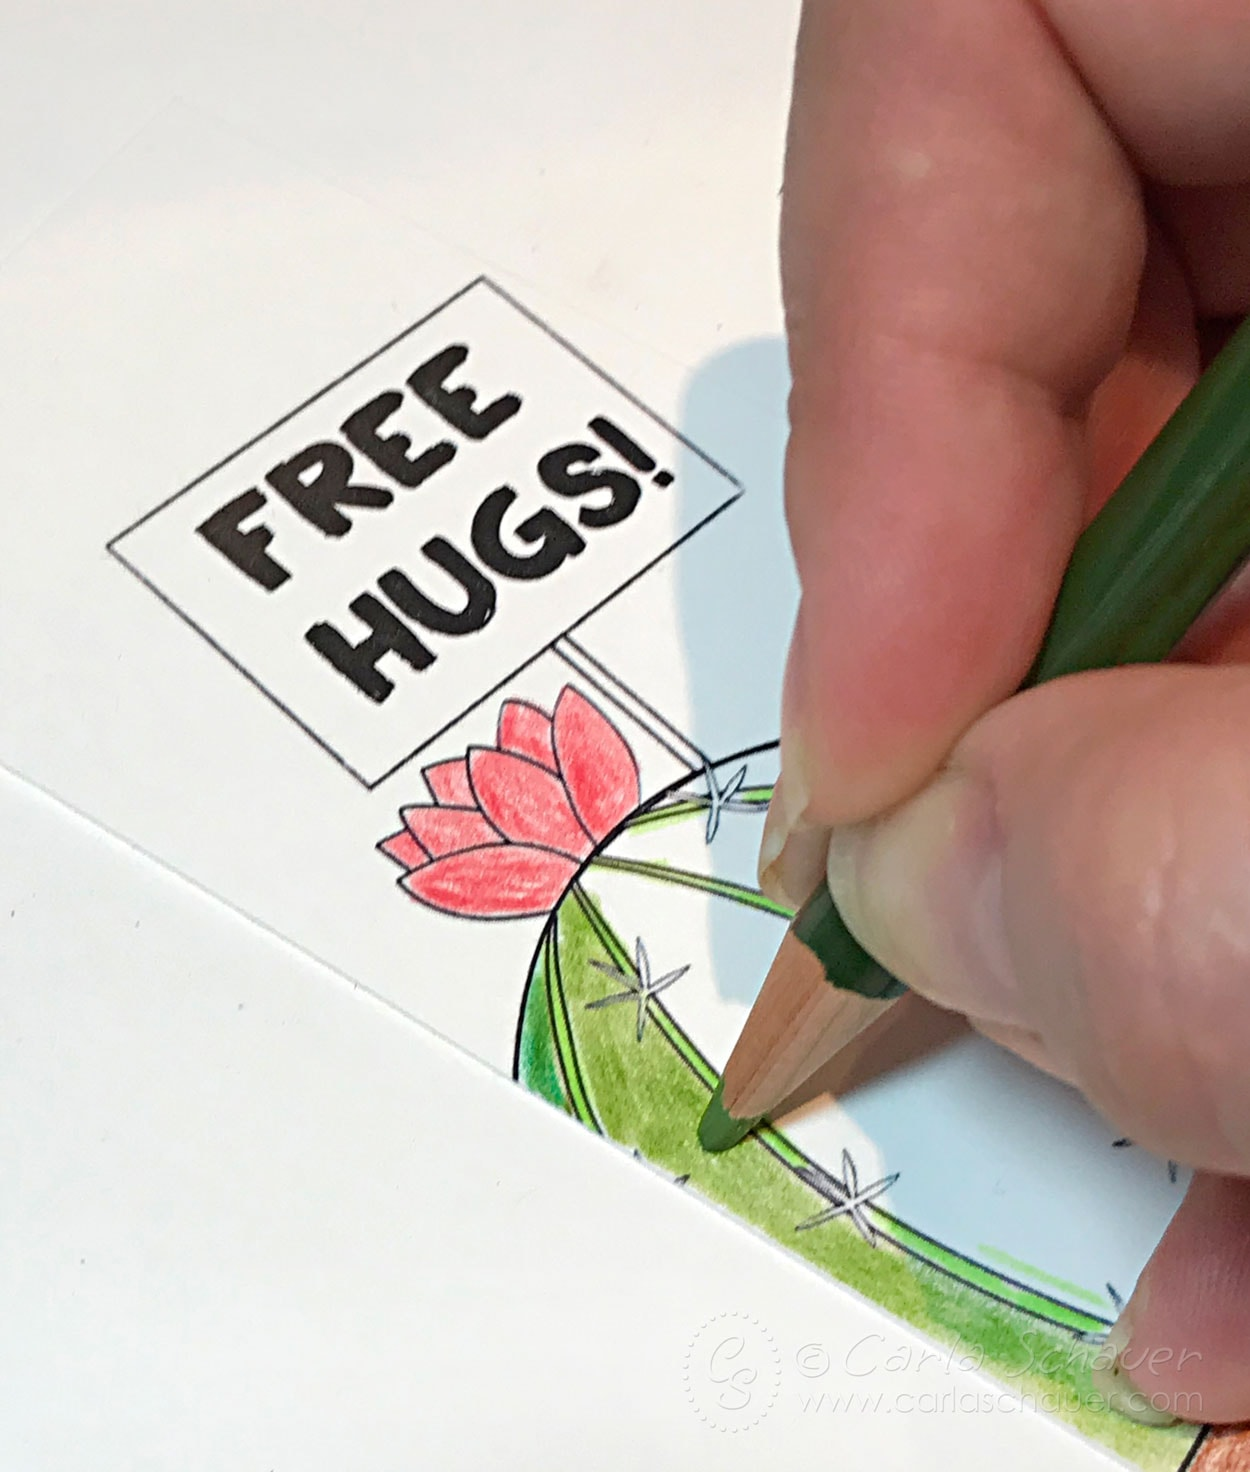 Coloring cactus bookmark with colored pencils